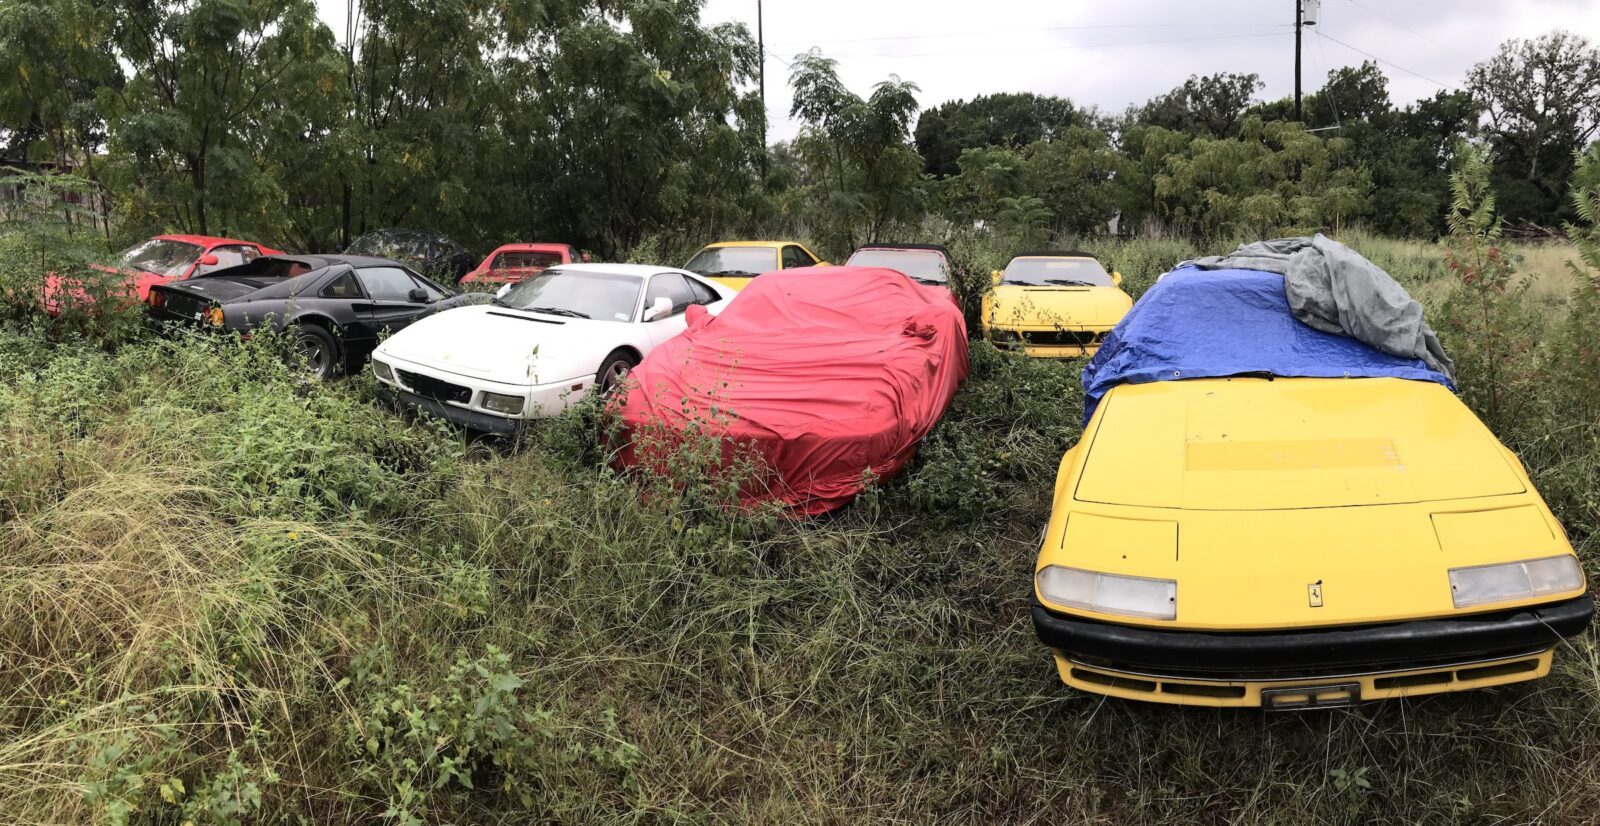 Field Of Abandoned Ferraris